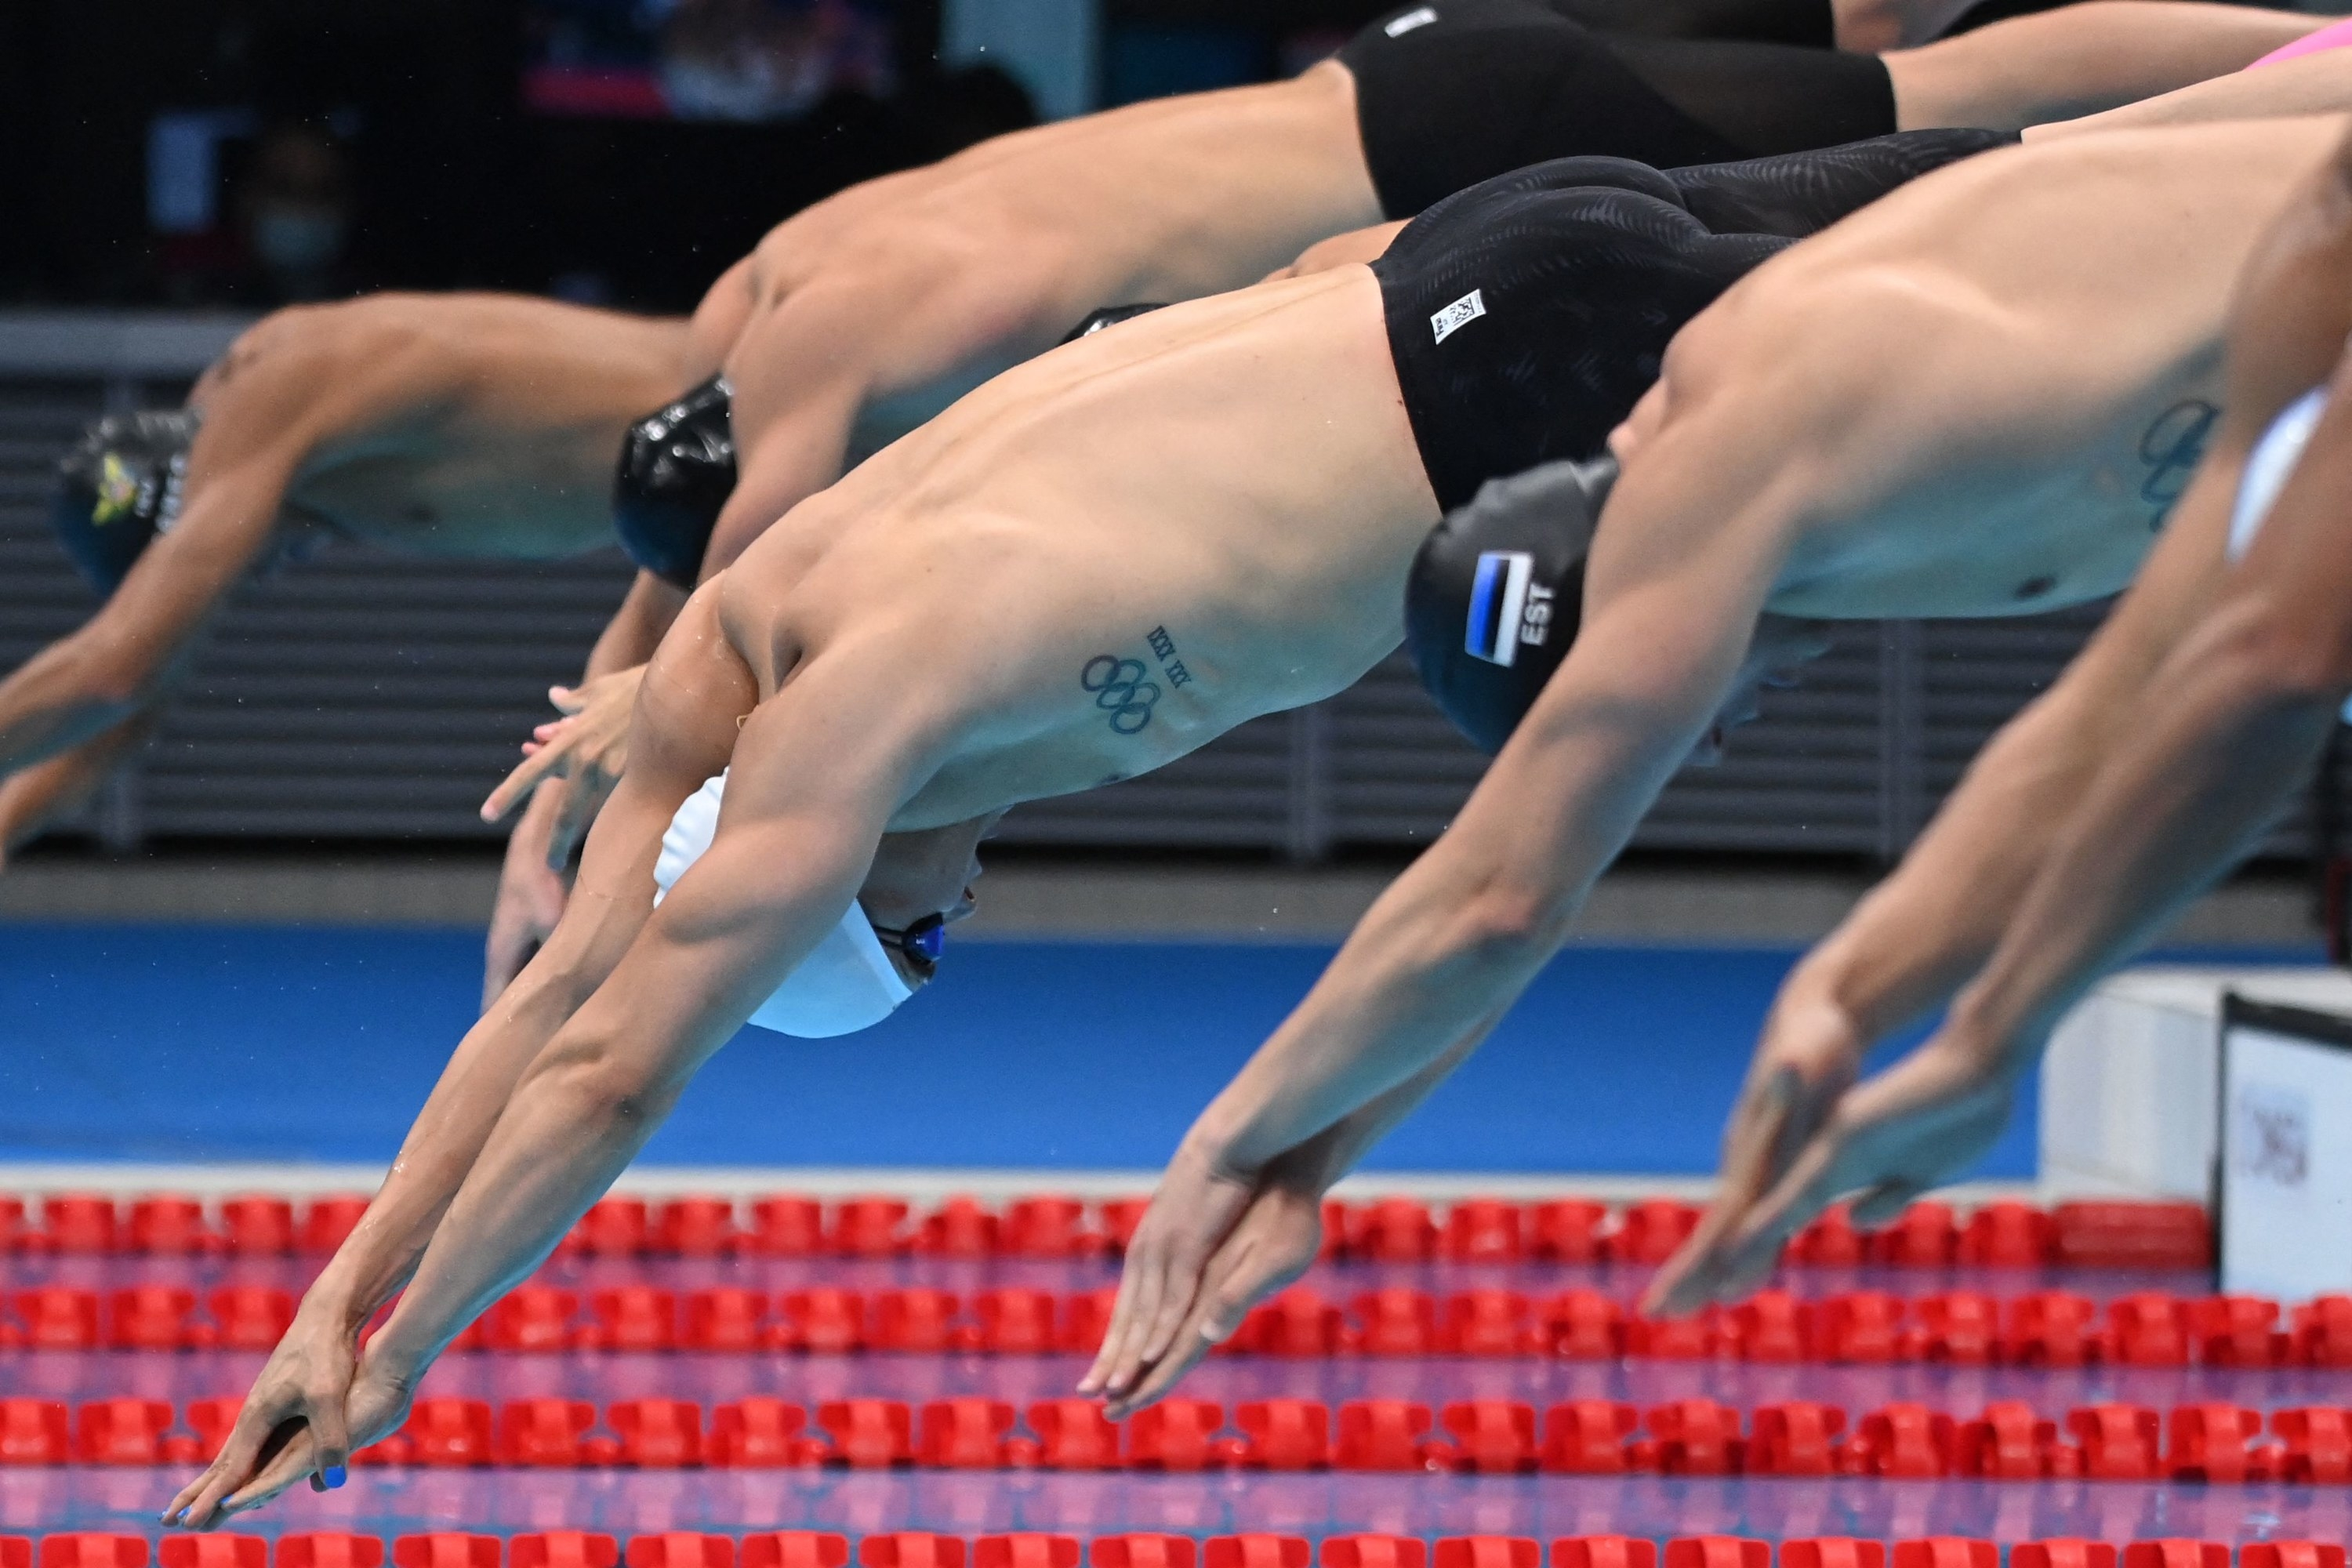 Group of male swimmers dive into Olympic pool at start of competition